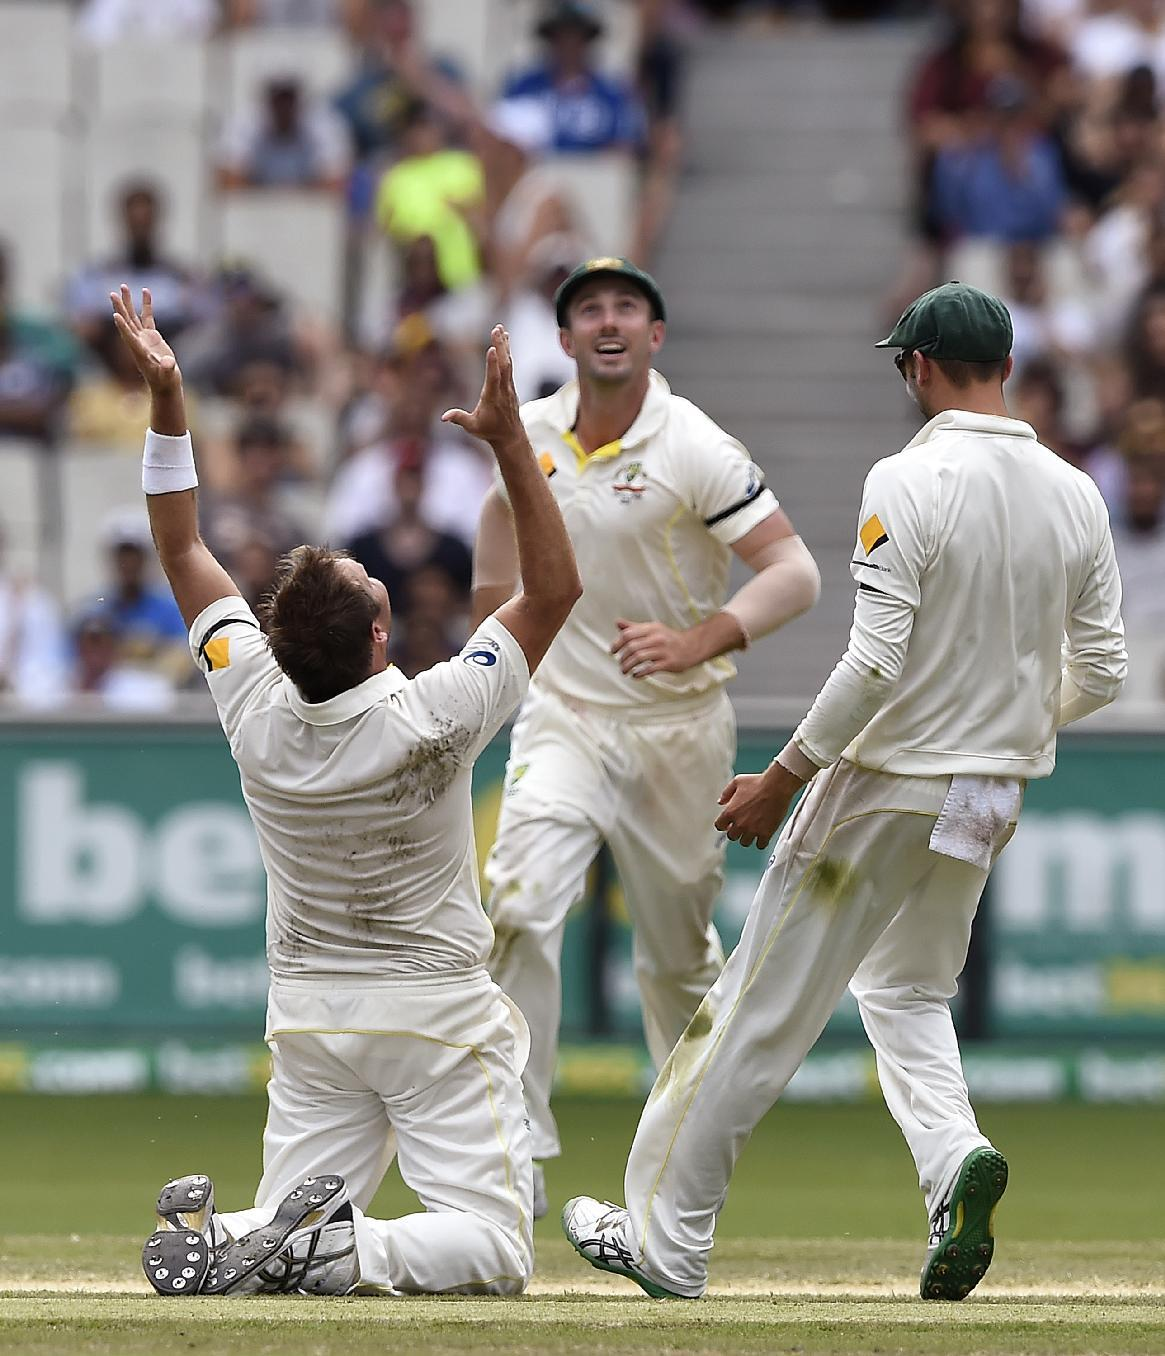 India 462-8 at stumps on day 3 chasing Australia's 530